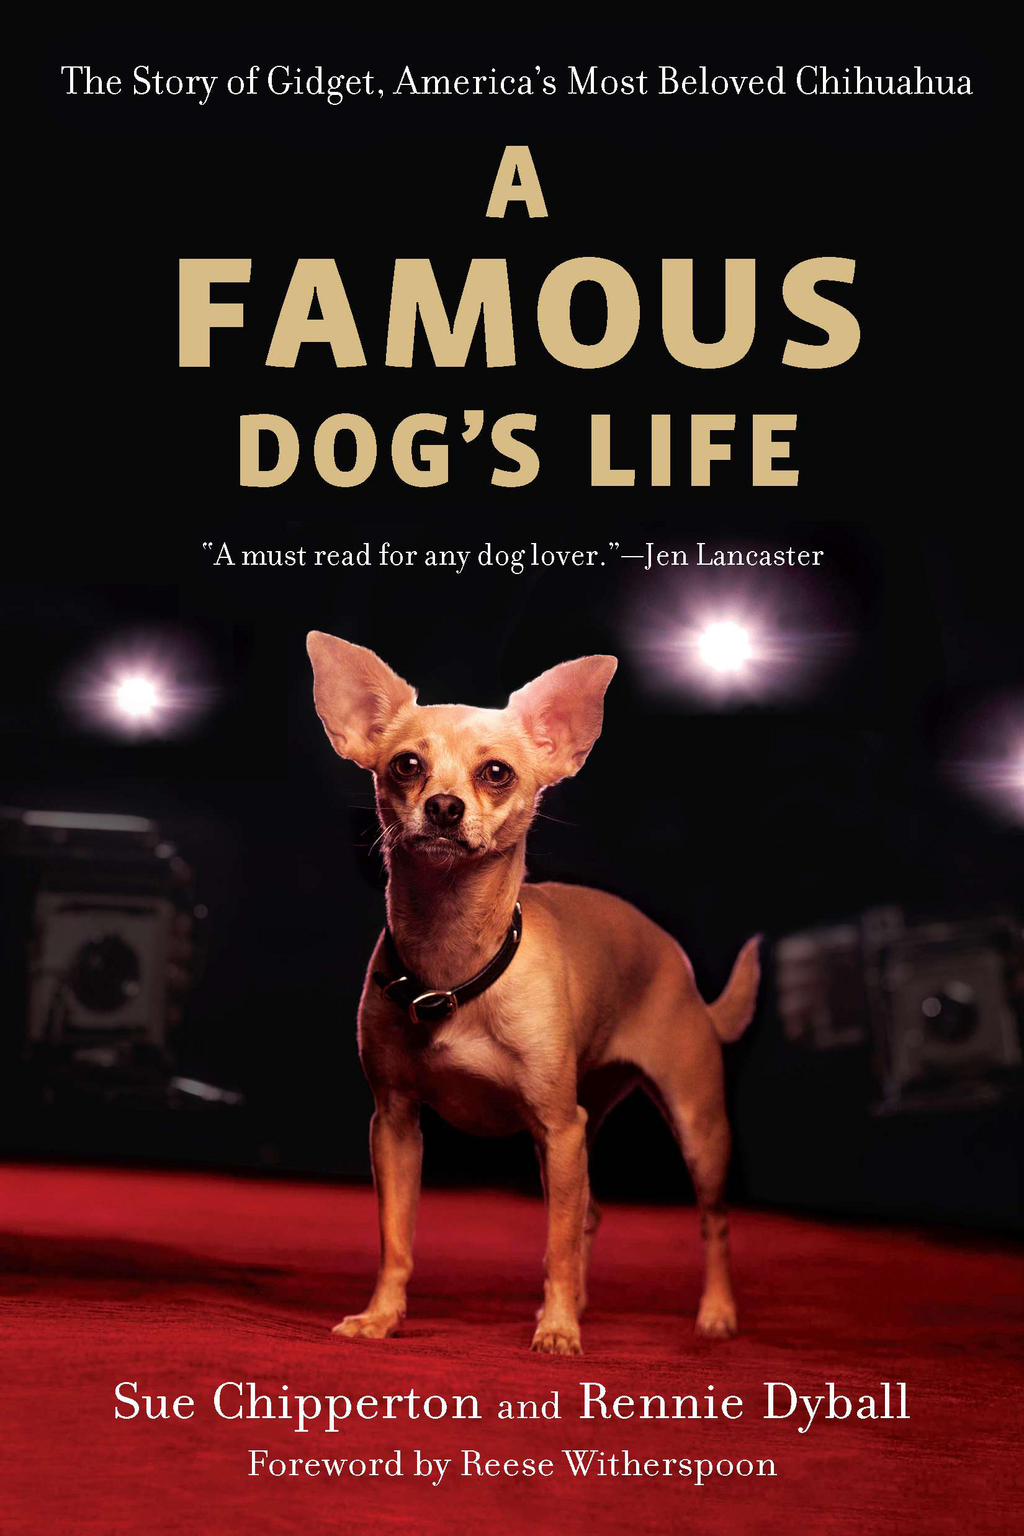 A Famous Dog's Life: The Story of Gidget, America's Most Beloved Chihuahua